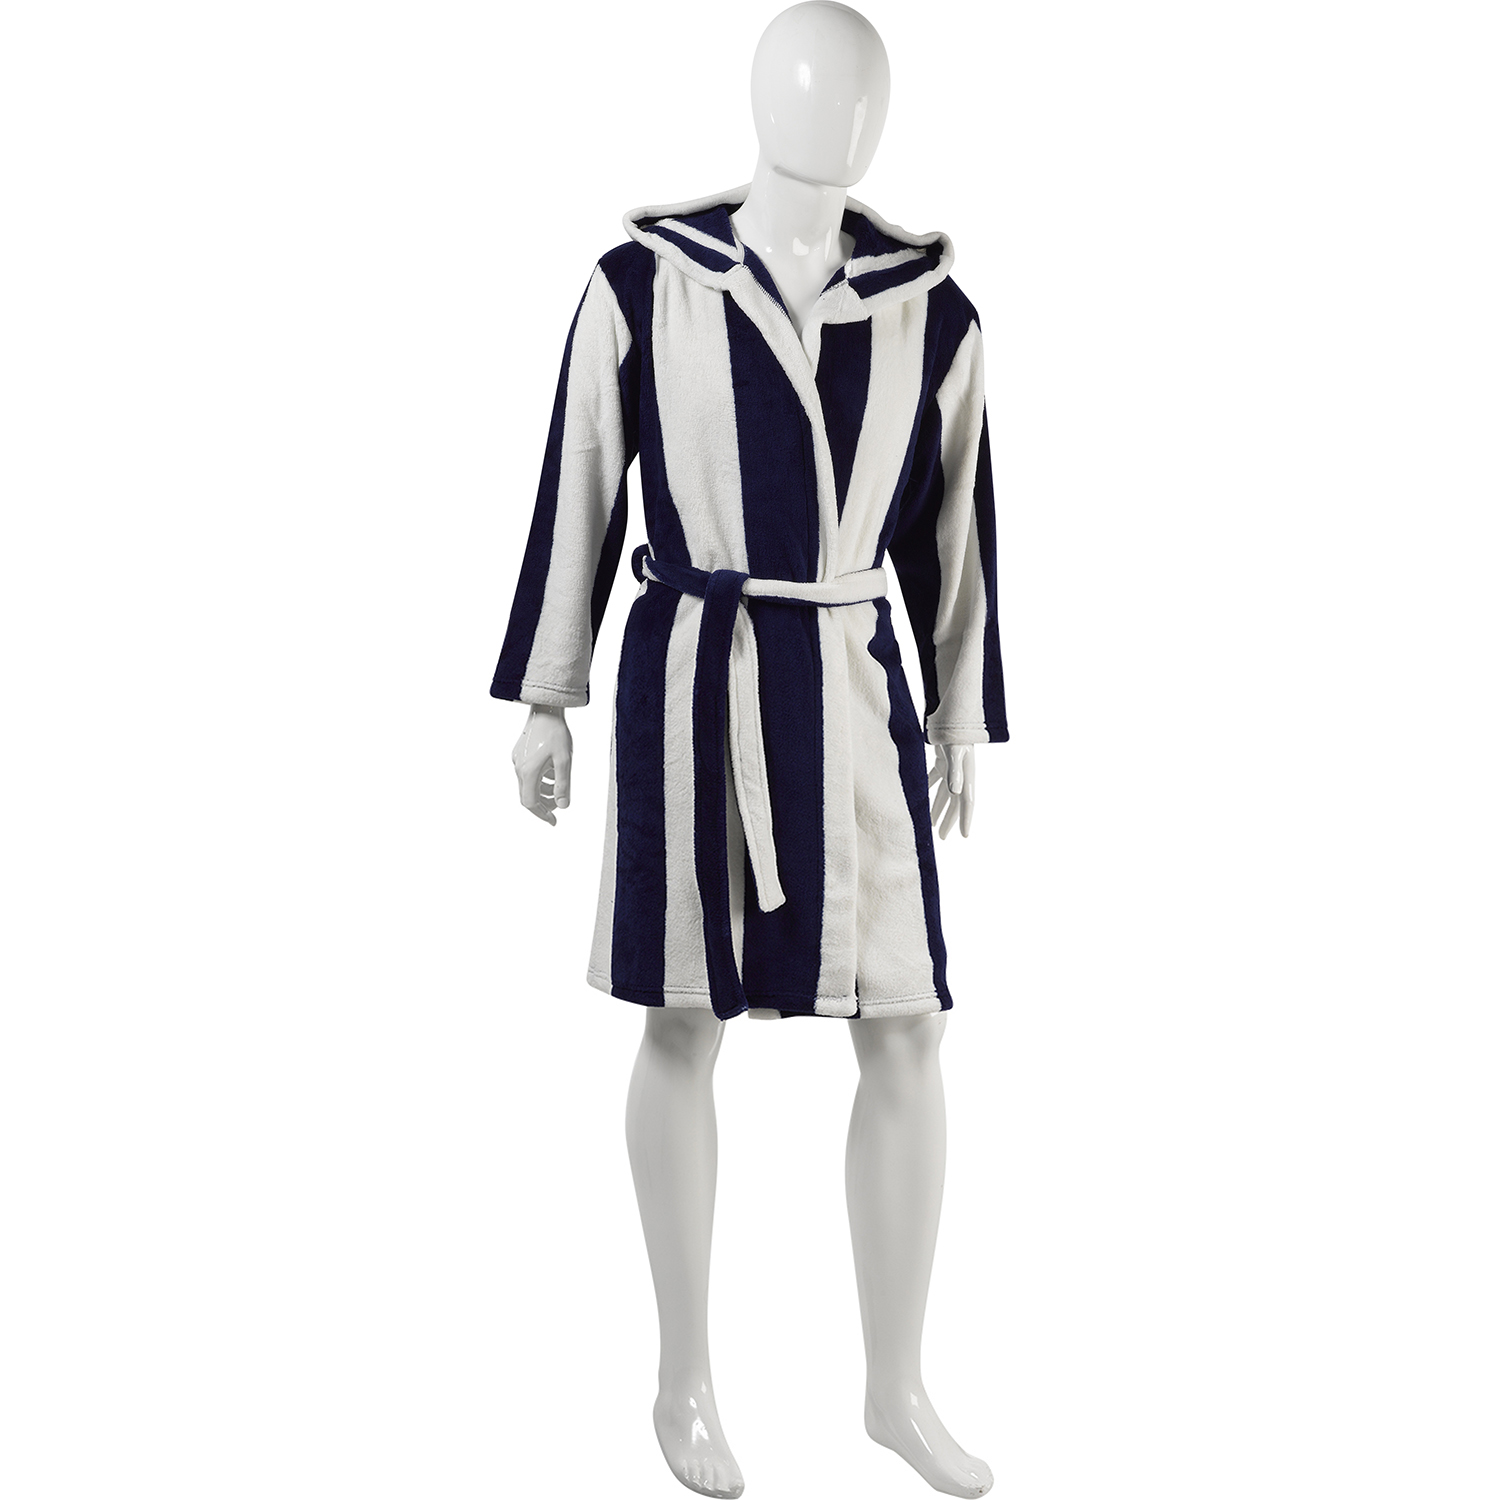 Mens white dressing gown - Nightwear : Mince His Words